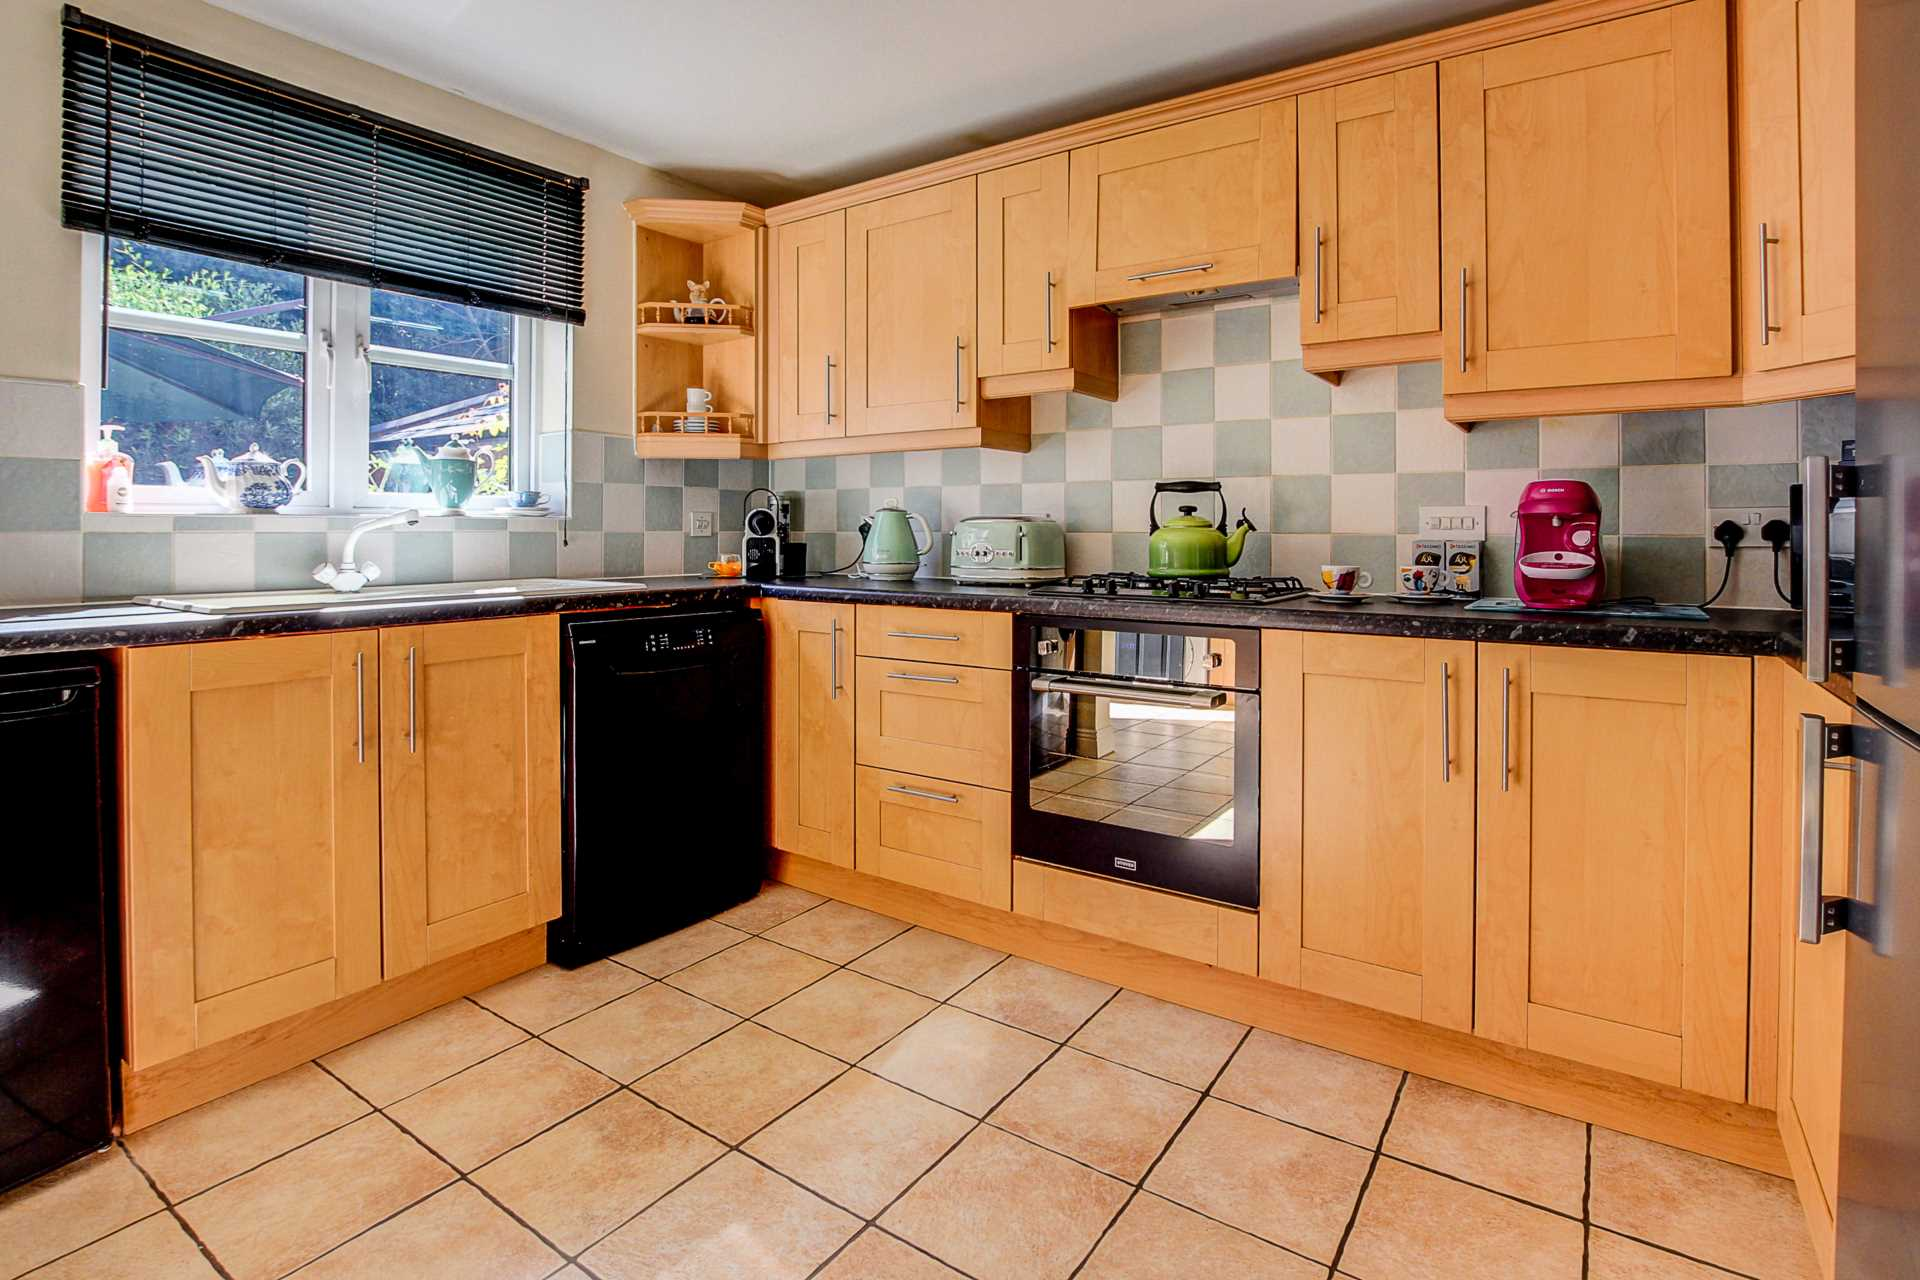 4 bed semi-detached house for sale in Westbury Way, Blandford Forum 1